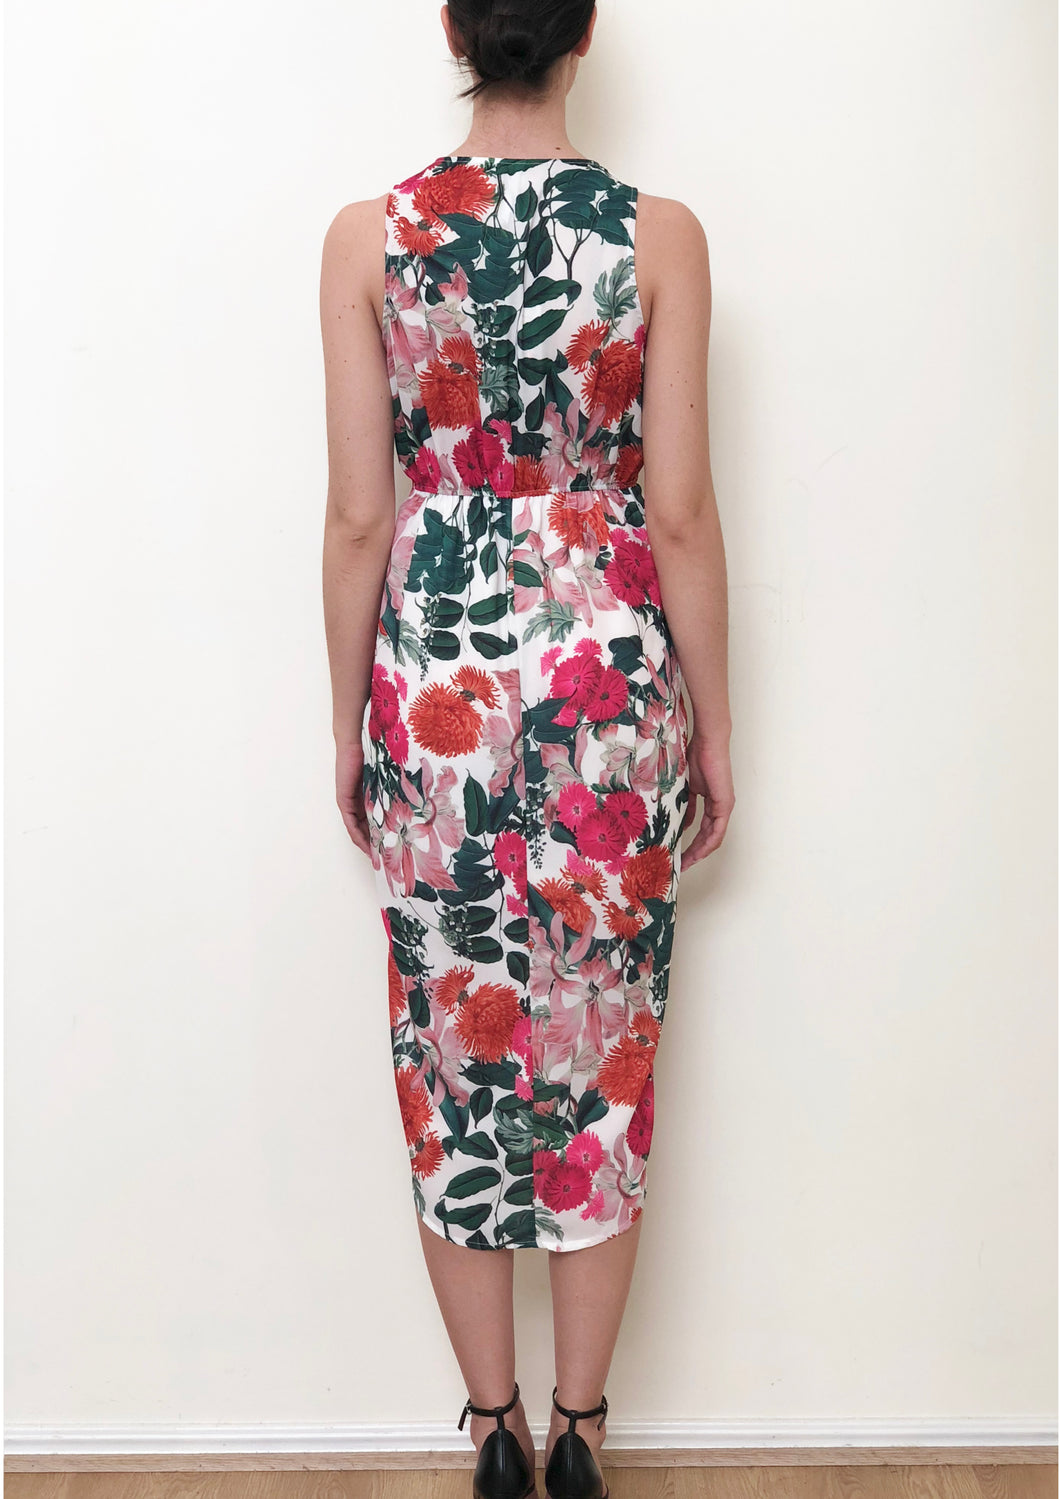 Super Pop Dress by @citychiconline, Available in sizes XS